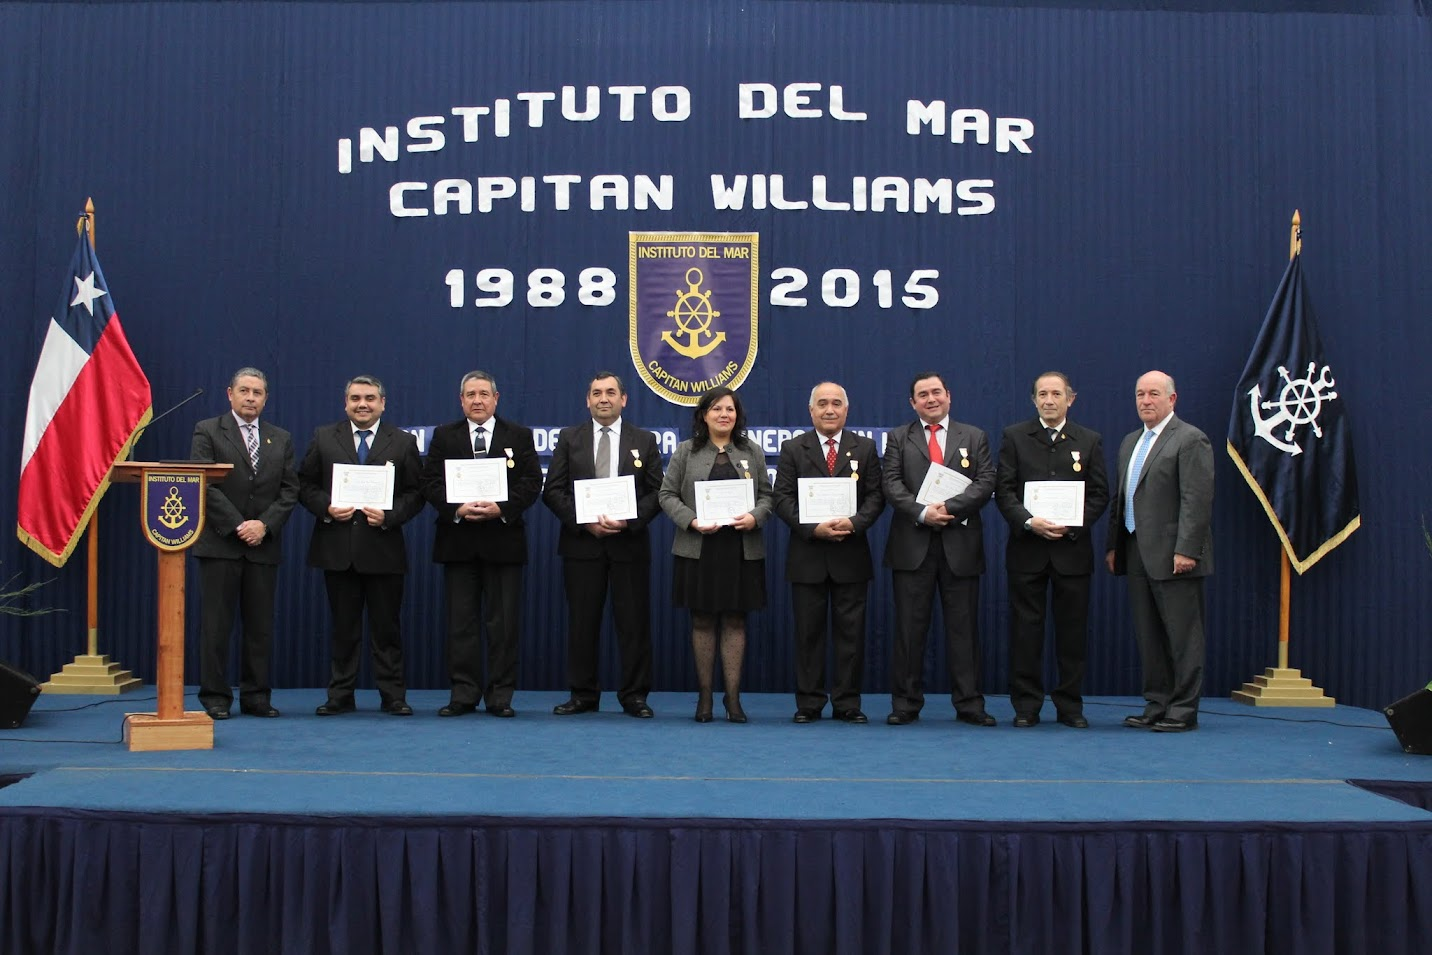 CEREMONIA ANIVERSARIO INSTITUTO DEL MAR 2015